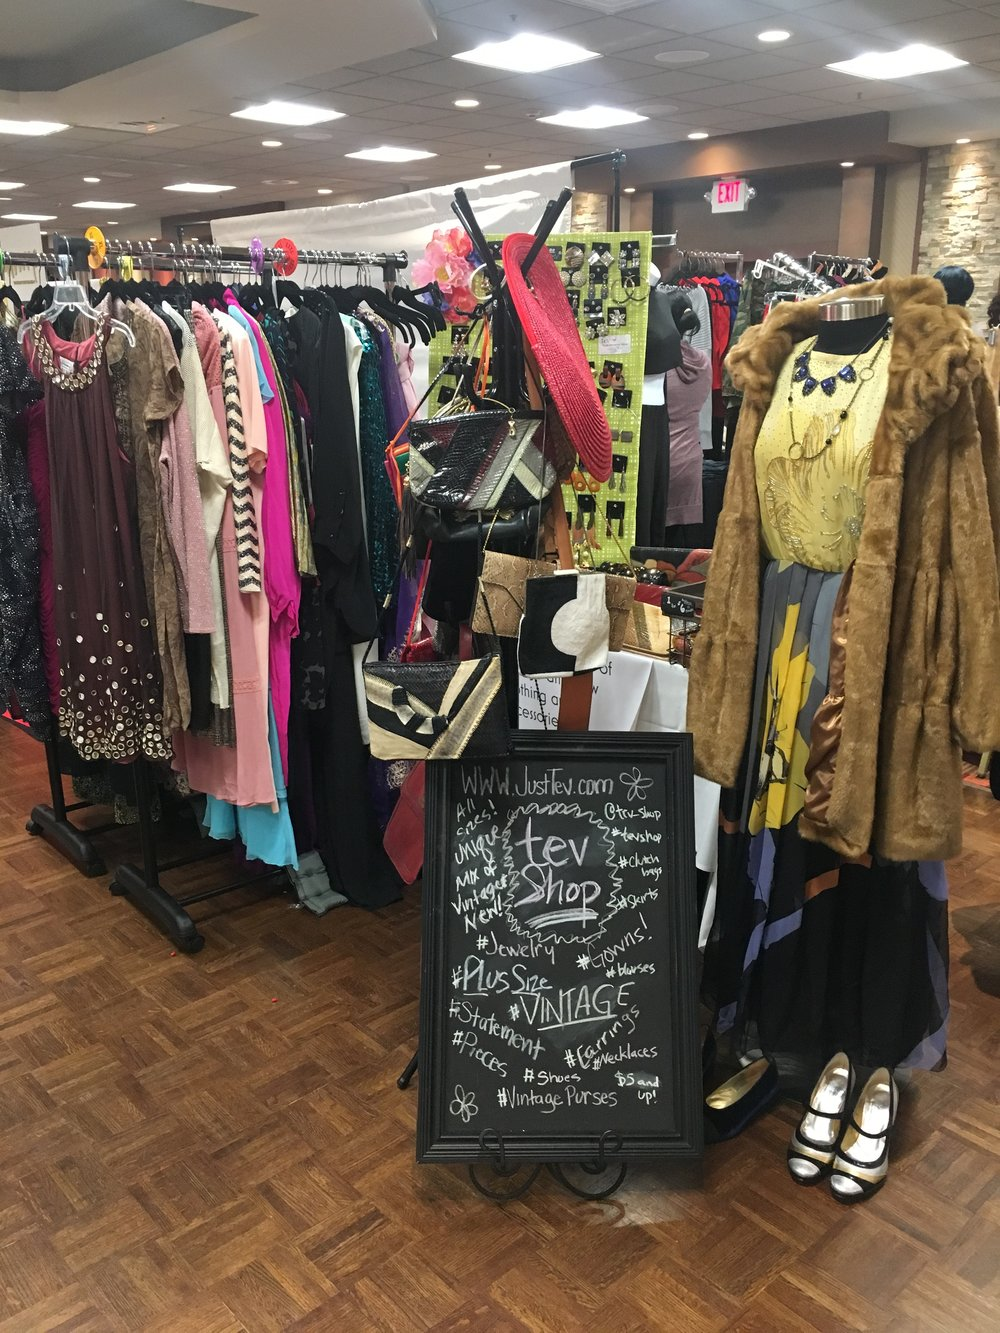 My beautiful booth! tevShop at Sistahs in Business expo - April 14, 2018